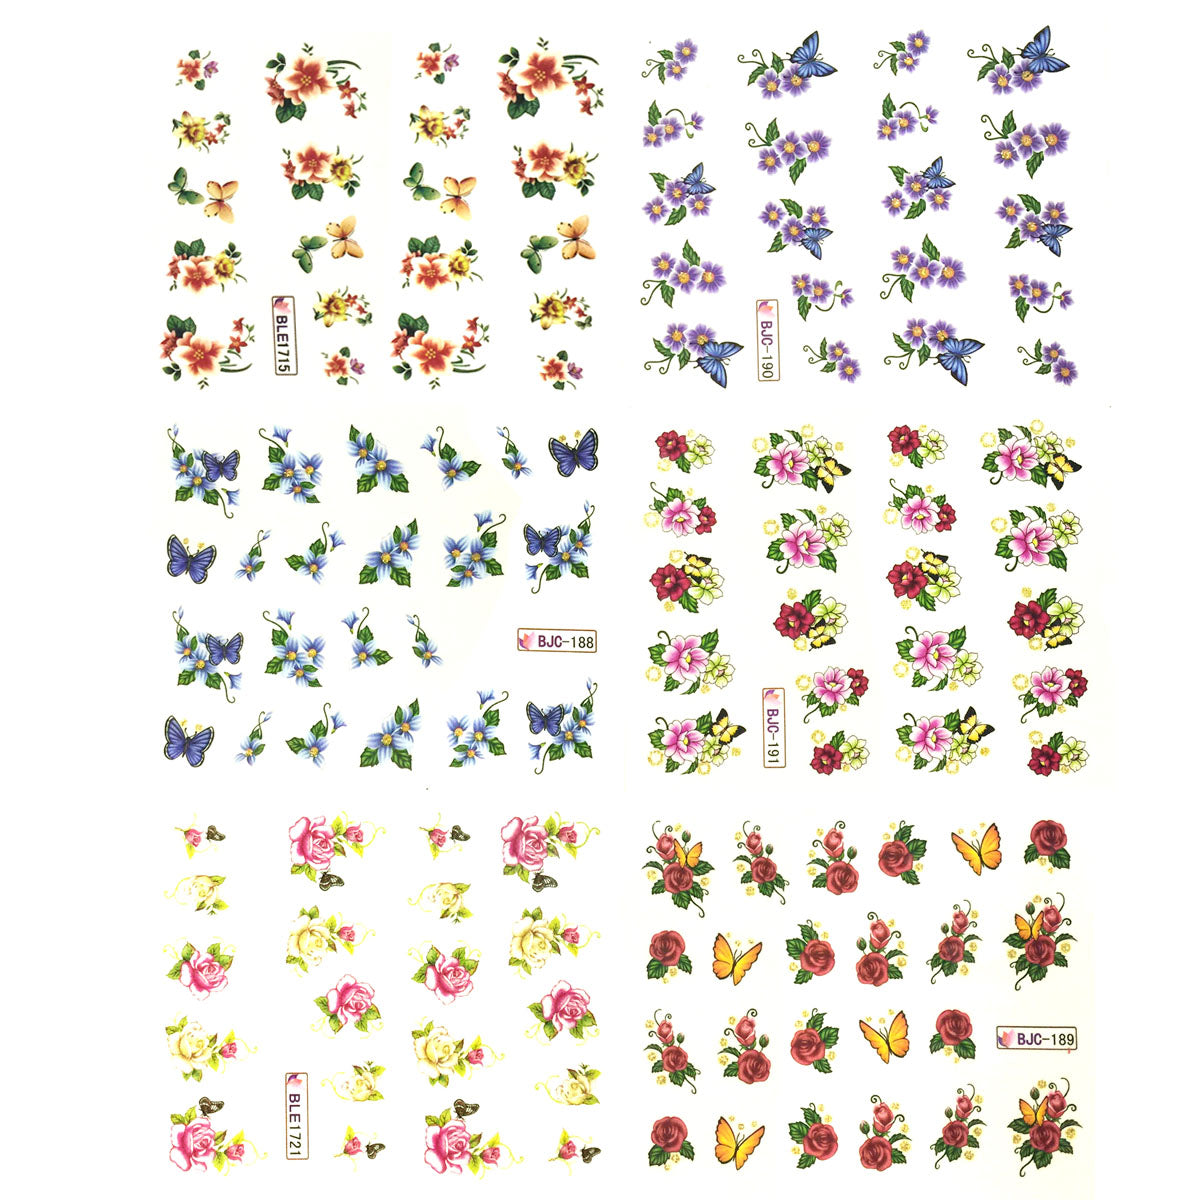 Wrapables Nail Art Water Nail Stickers Water Transfer Stickers / Nail Art Tattoos / Nail Art Decals, Flowers & Butterflies (6 sheets)